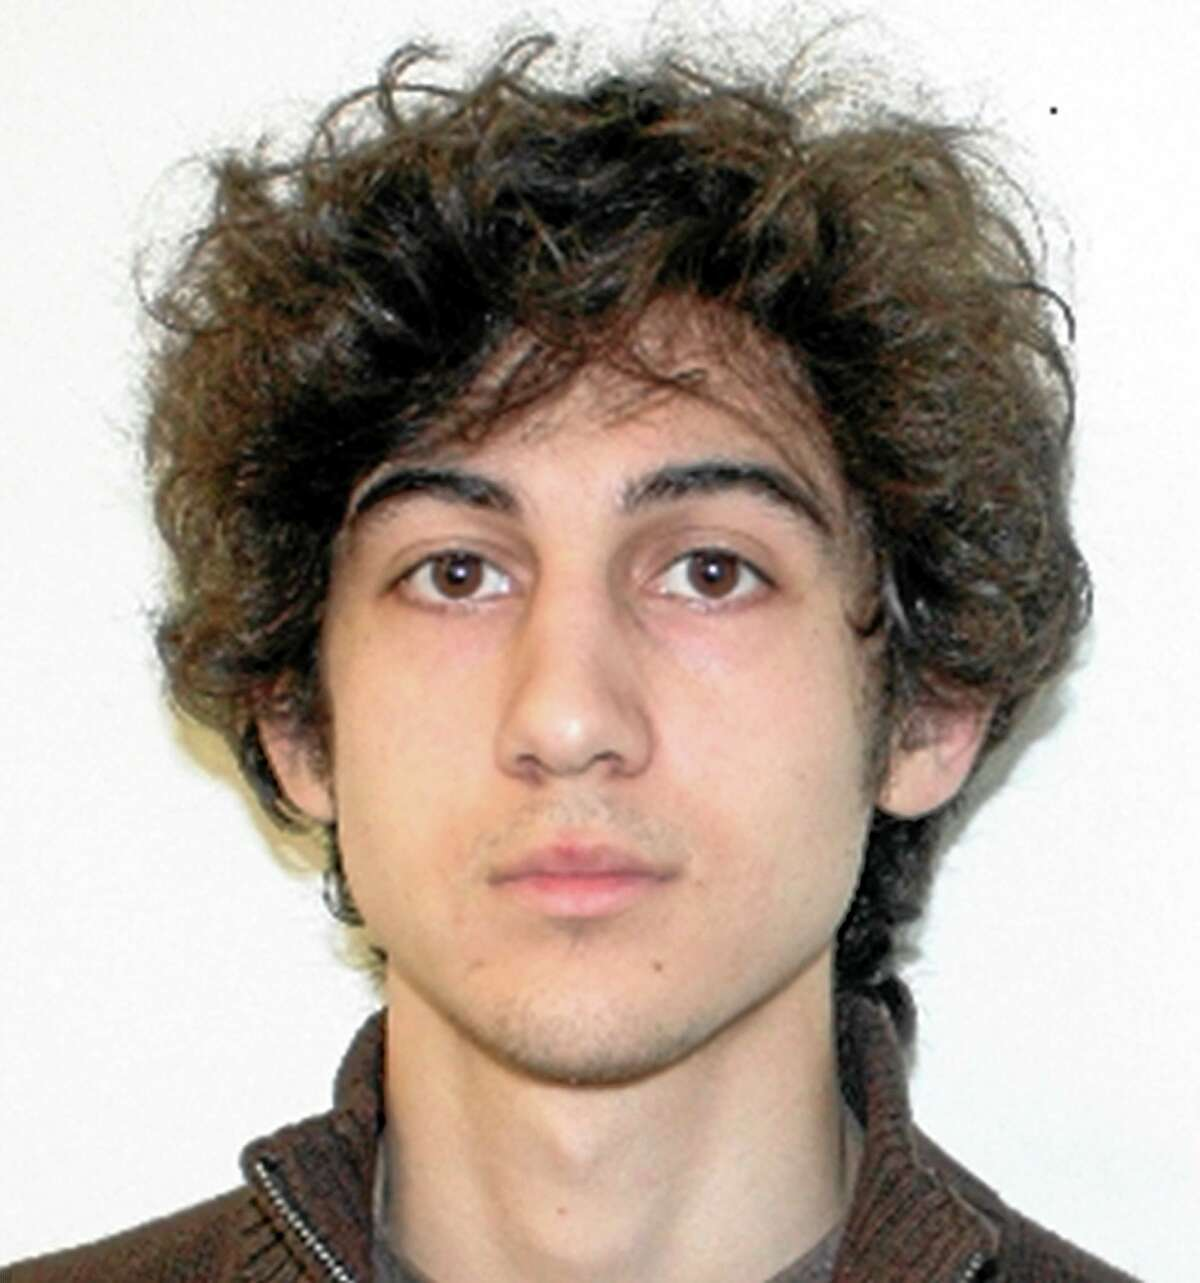 FILE - This file photo released Friday, April 19, 2013 by the Federal Bureau of Investigation shows Dzhokhar Tsarnaev, suspect in the Boston Marathon bombings. Lawyers for Boston Marathon bombing suspect Dzhokhar Tsarnaev are asking a judge to dismiss indictments and put proceedings in the case on hold over concerns about the jury selection process in federal court. (AP Photo/Federal Bureau of Investigation, File)